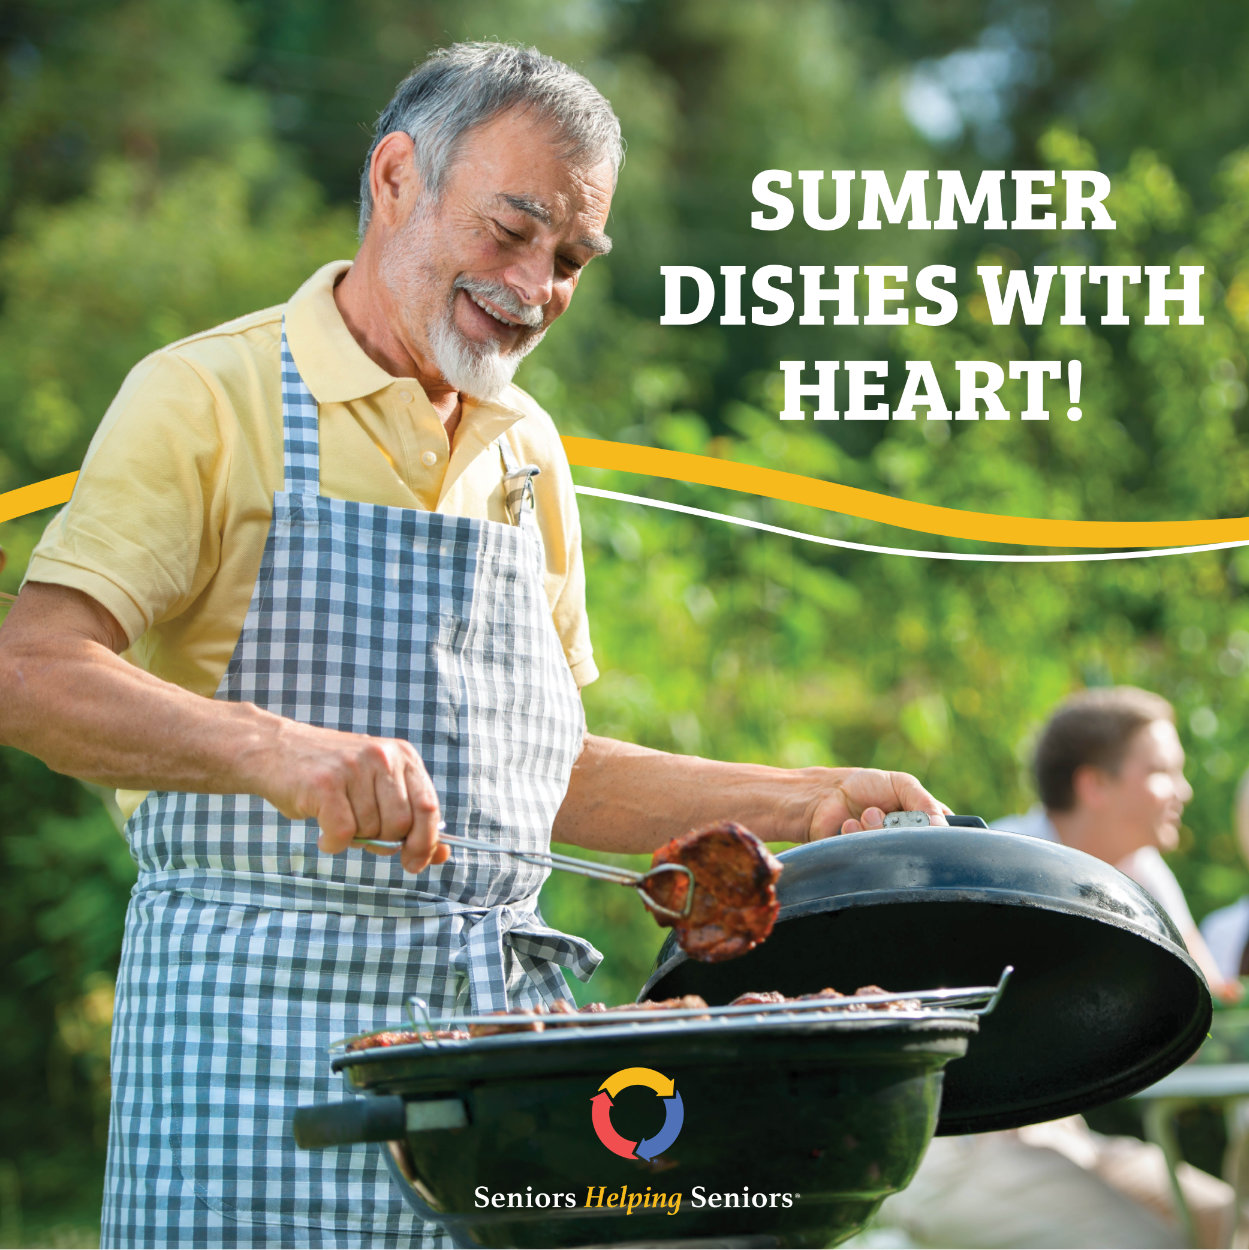 Senior Cooking on a Grill Outdoors